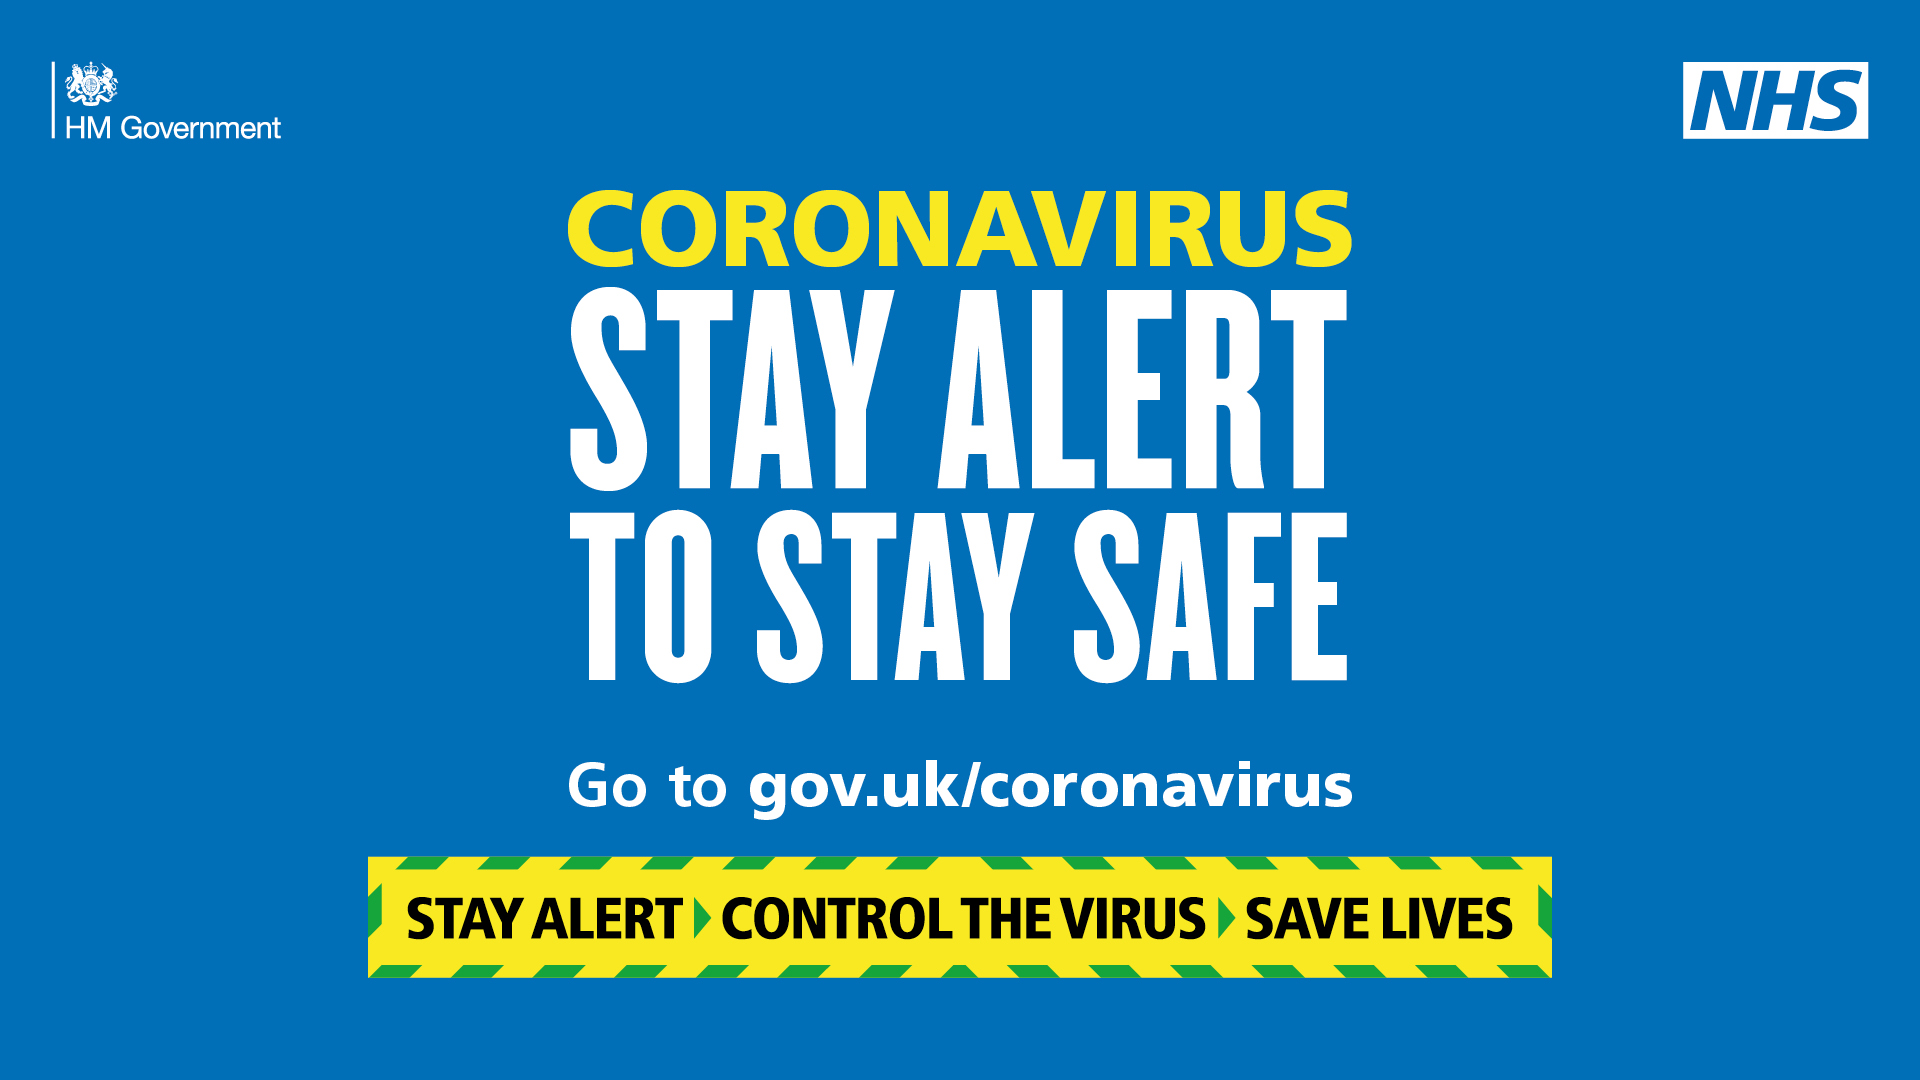 Image showing the NHS Coronavirus message from May 2020 Stay alert, control the virus, save lives